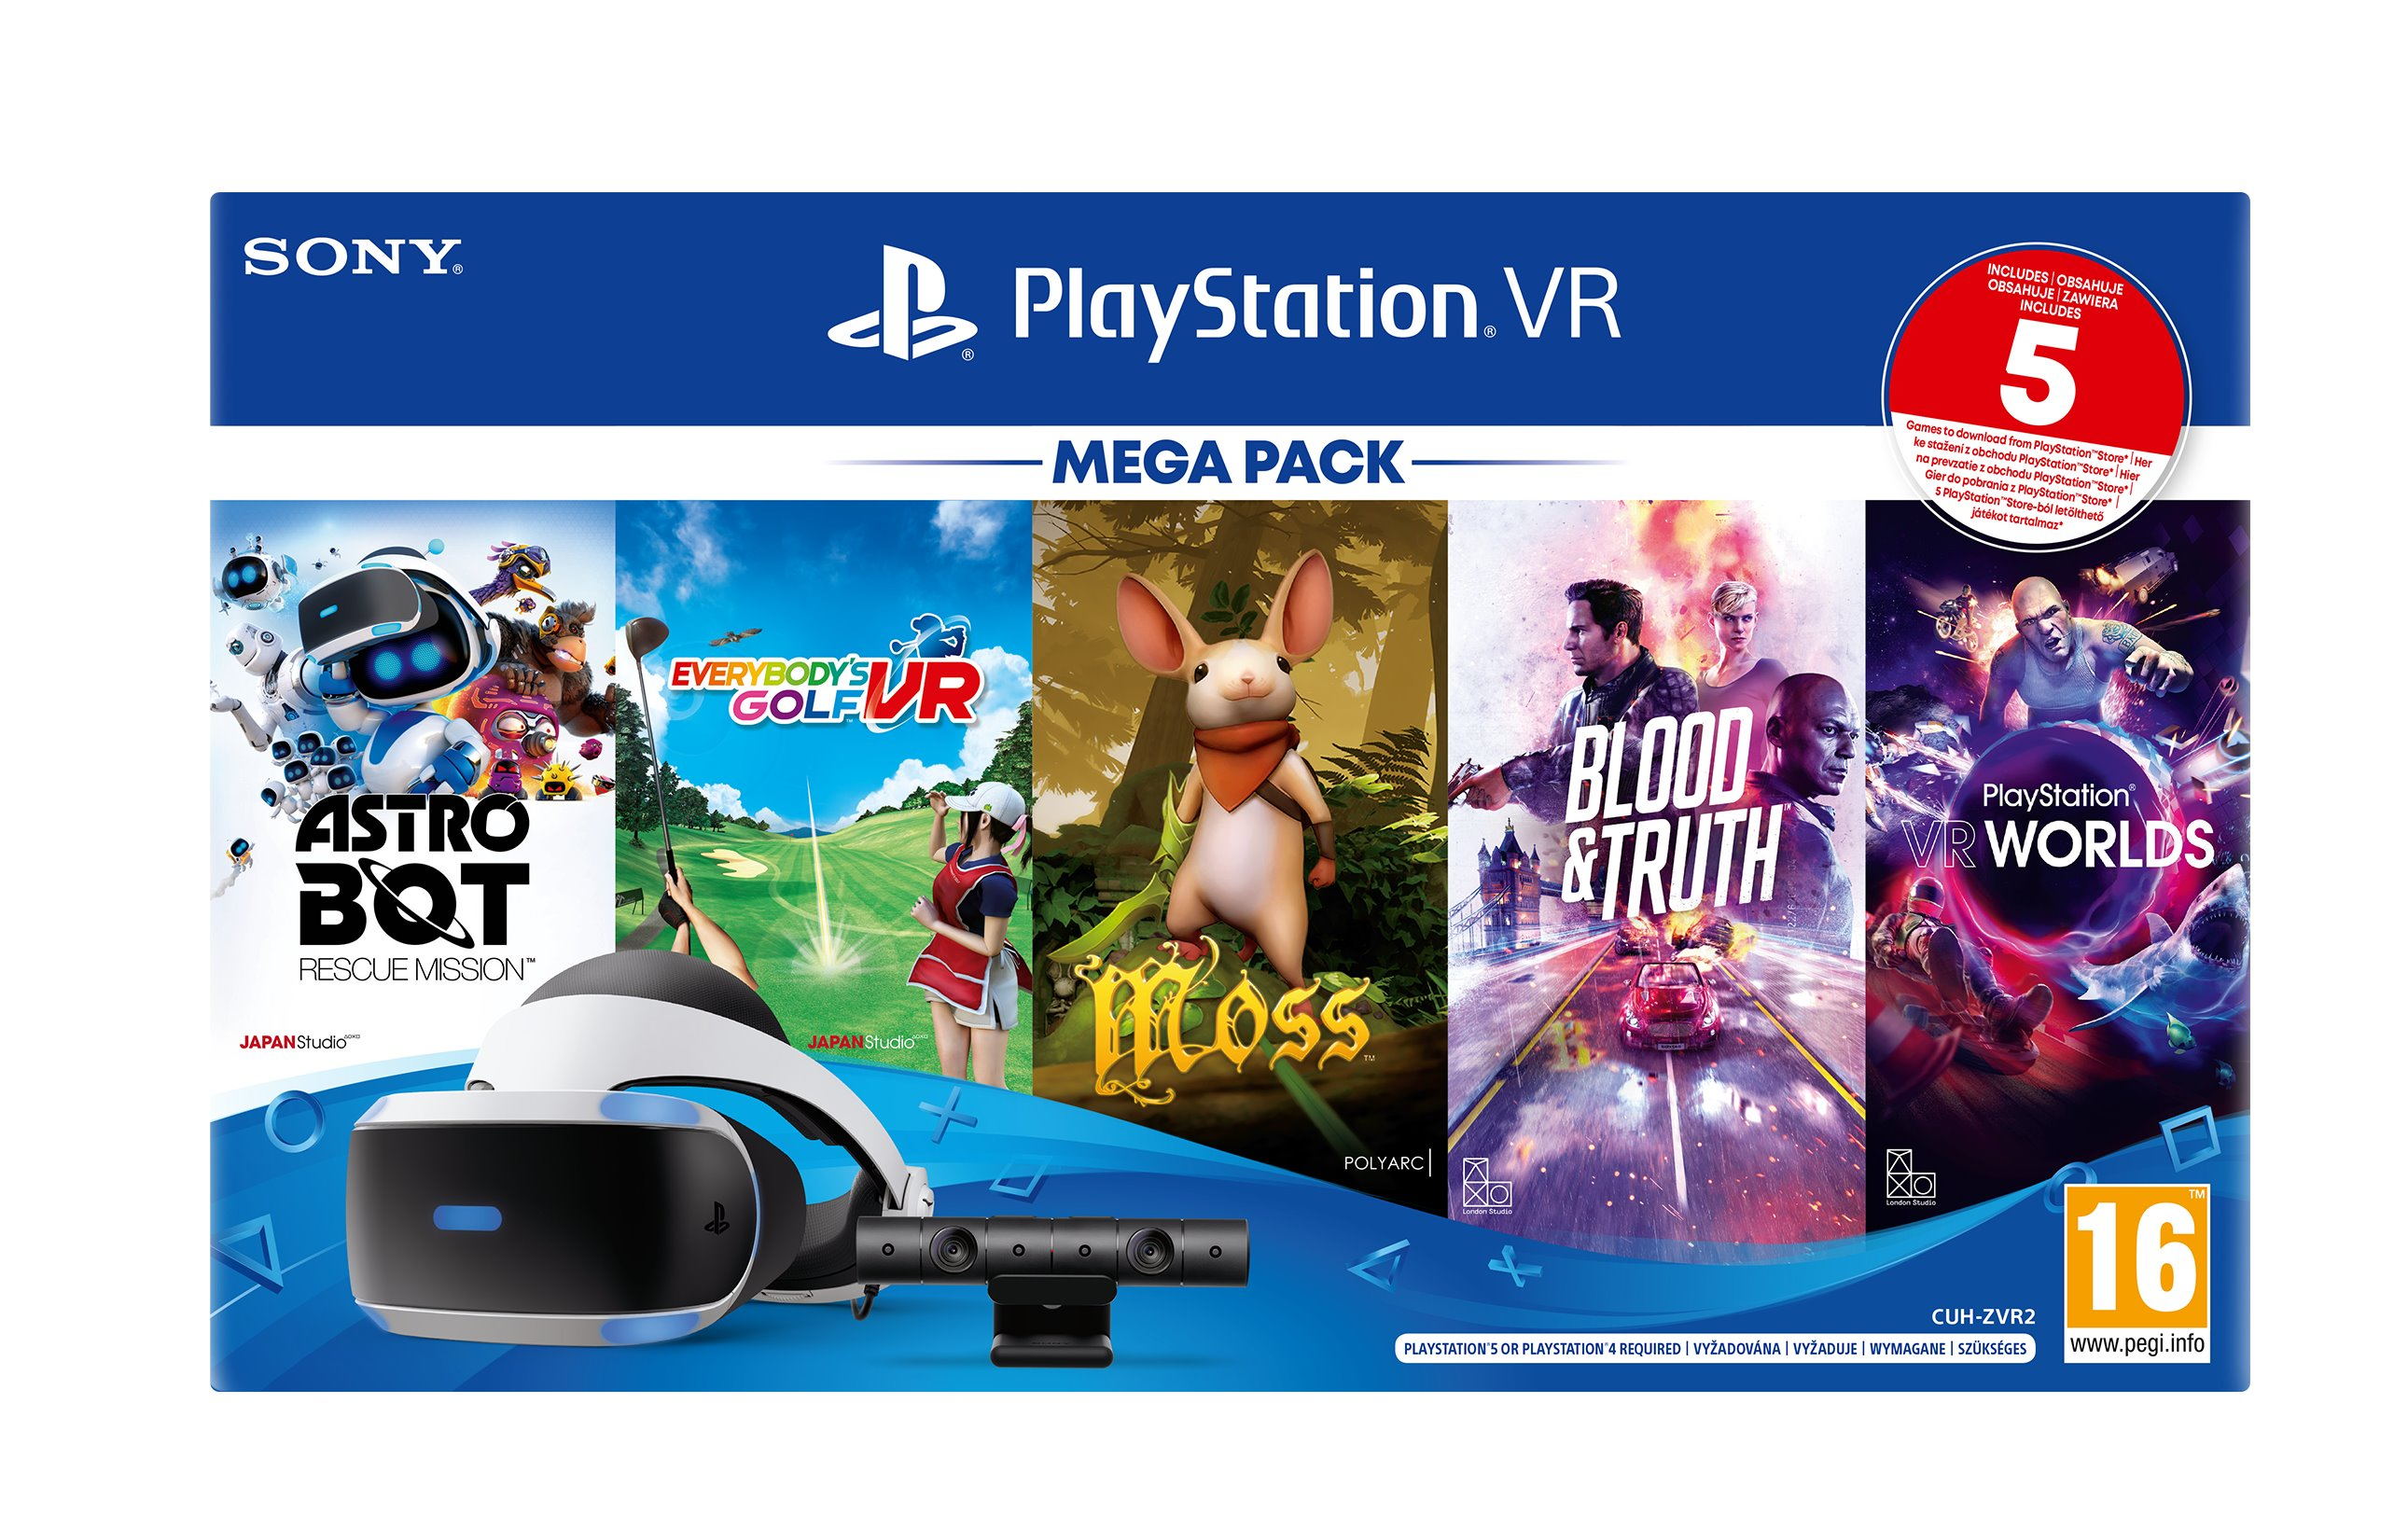 PlayStation VR Mega Pack3 - PS VR + Kamera + PS5 adaptér + hry